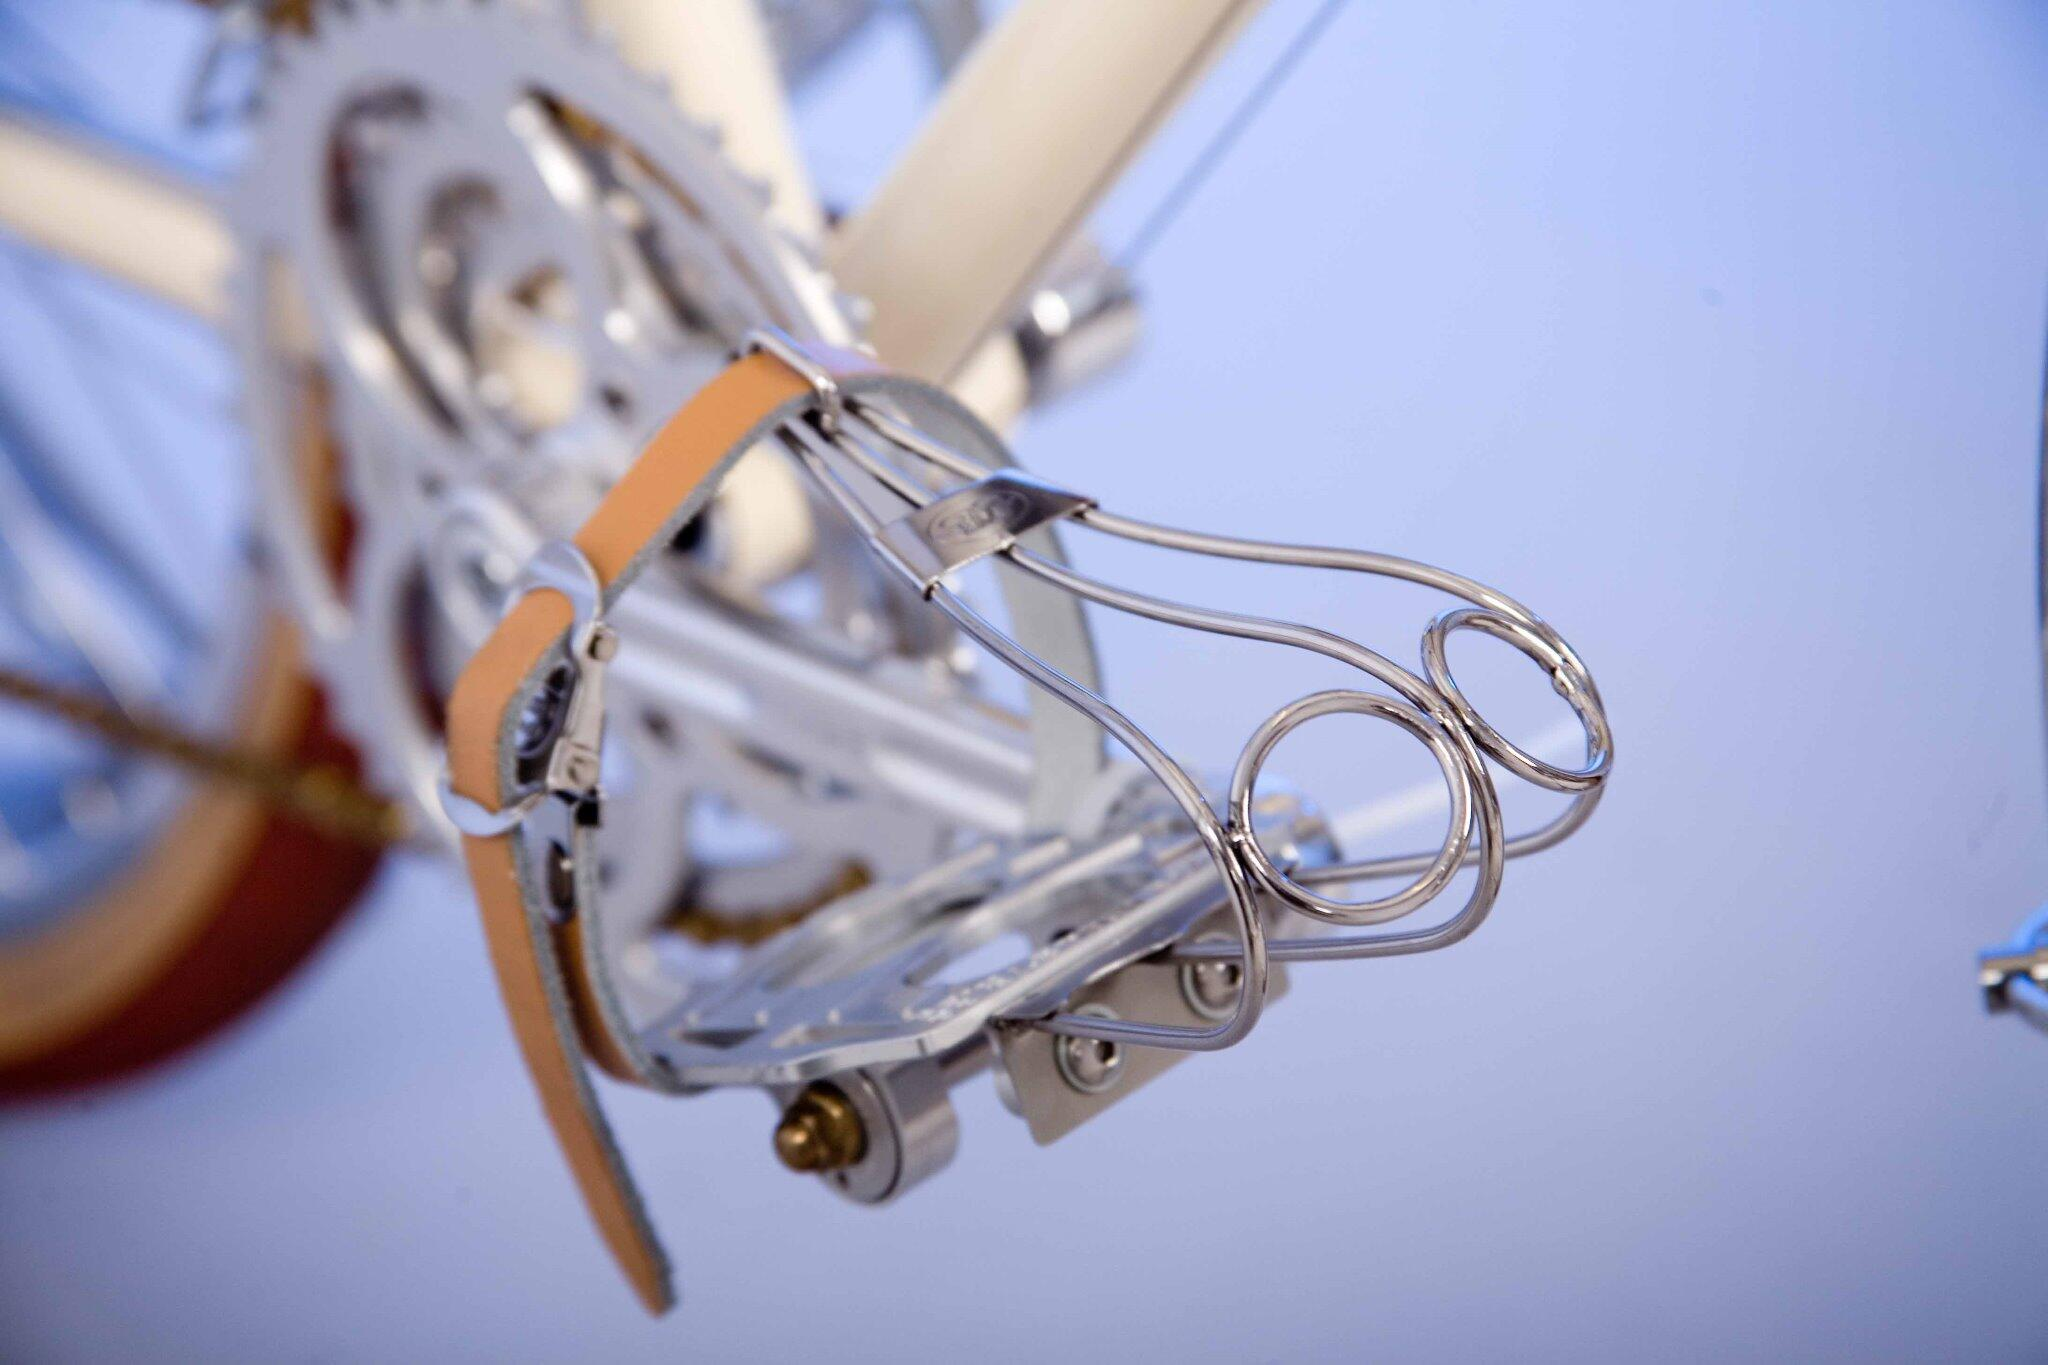 Toe clips on Randonneur ready for @vulpinecc #cyclogames http://t.co/lgYp7DSlLE